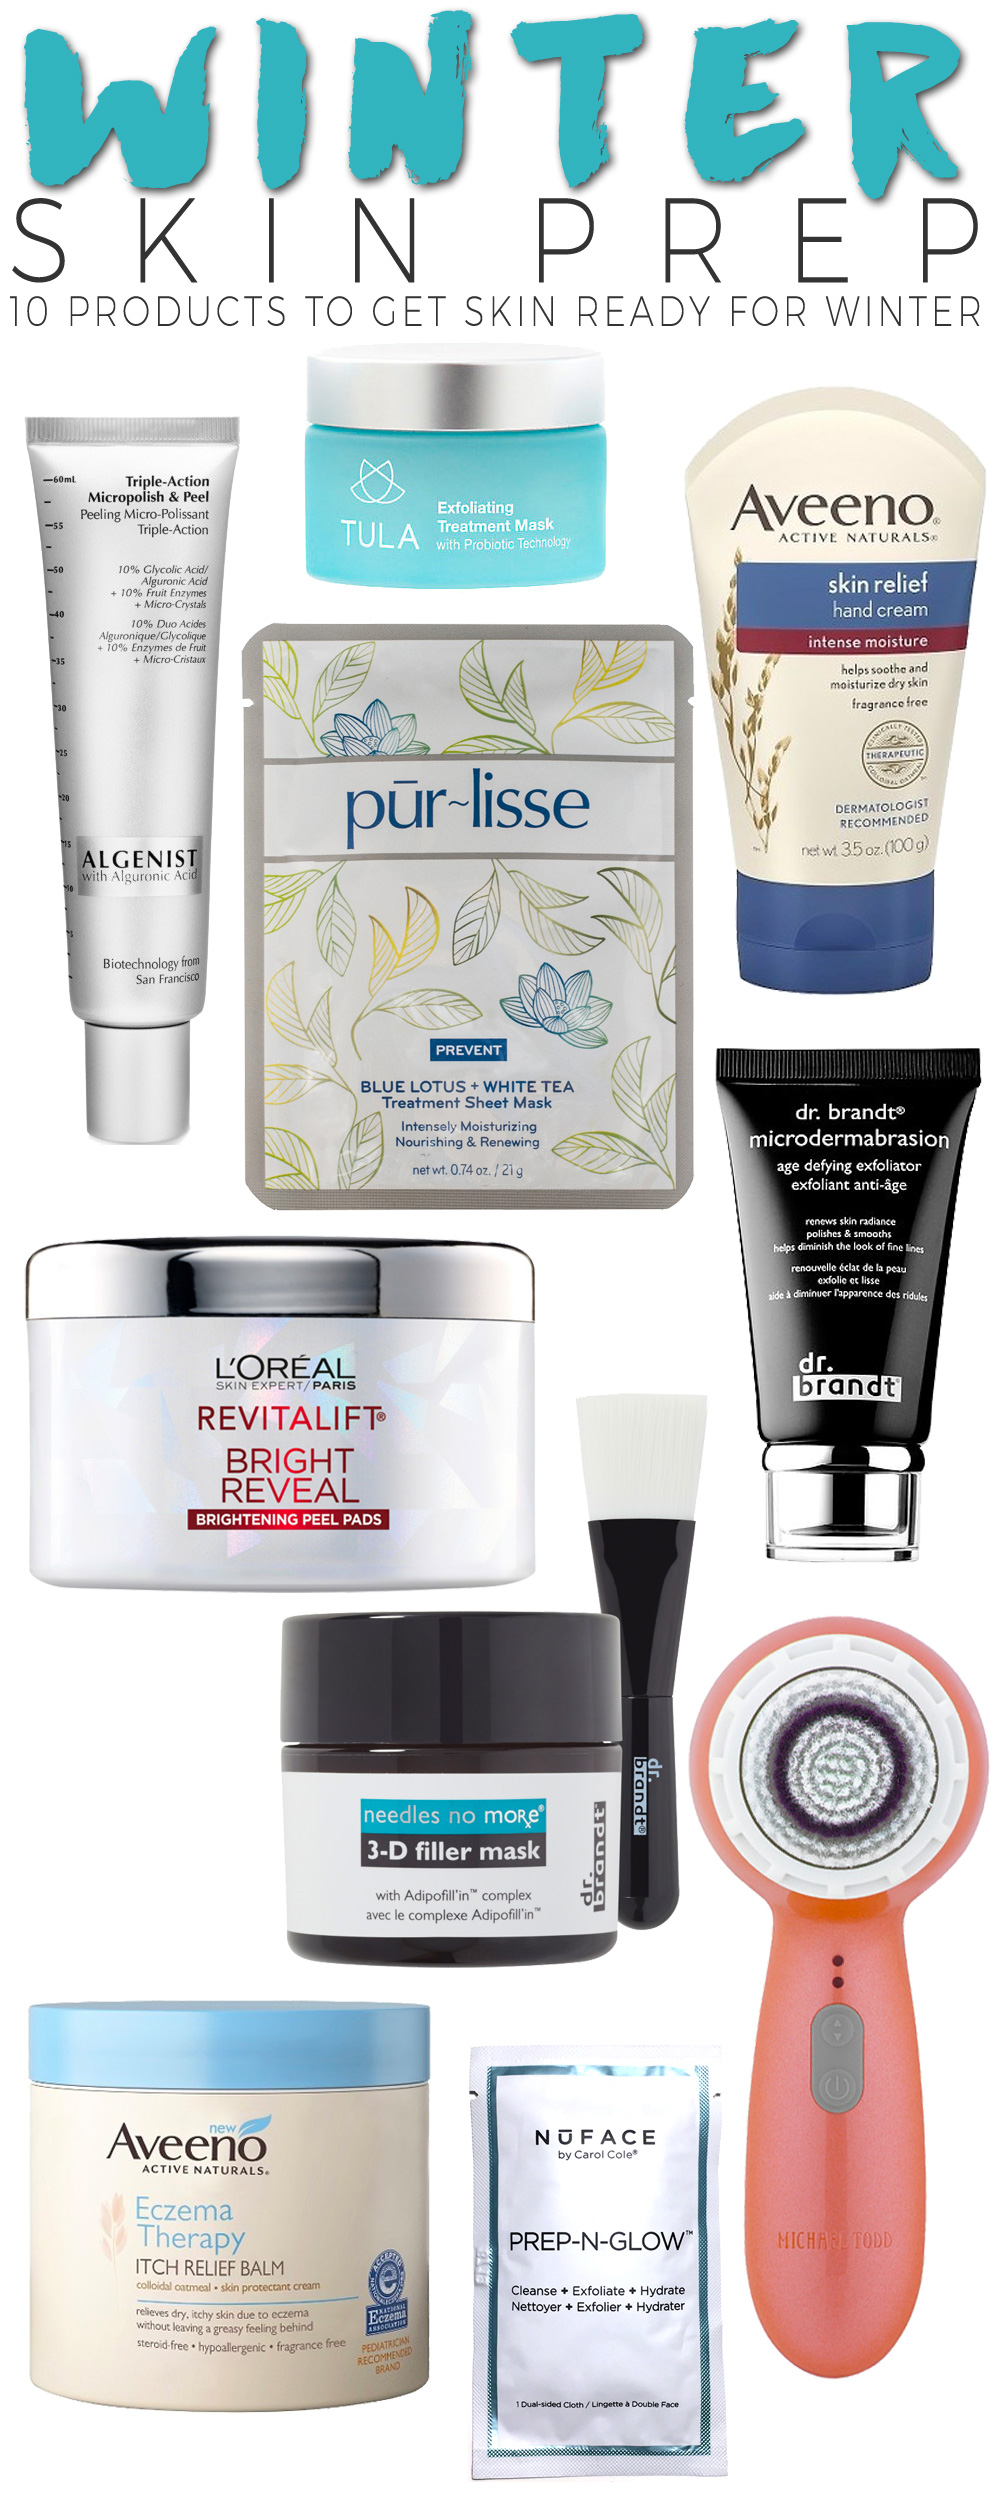 10 Products to Get Skin Ready for Winter